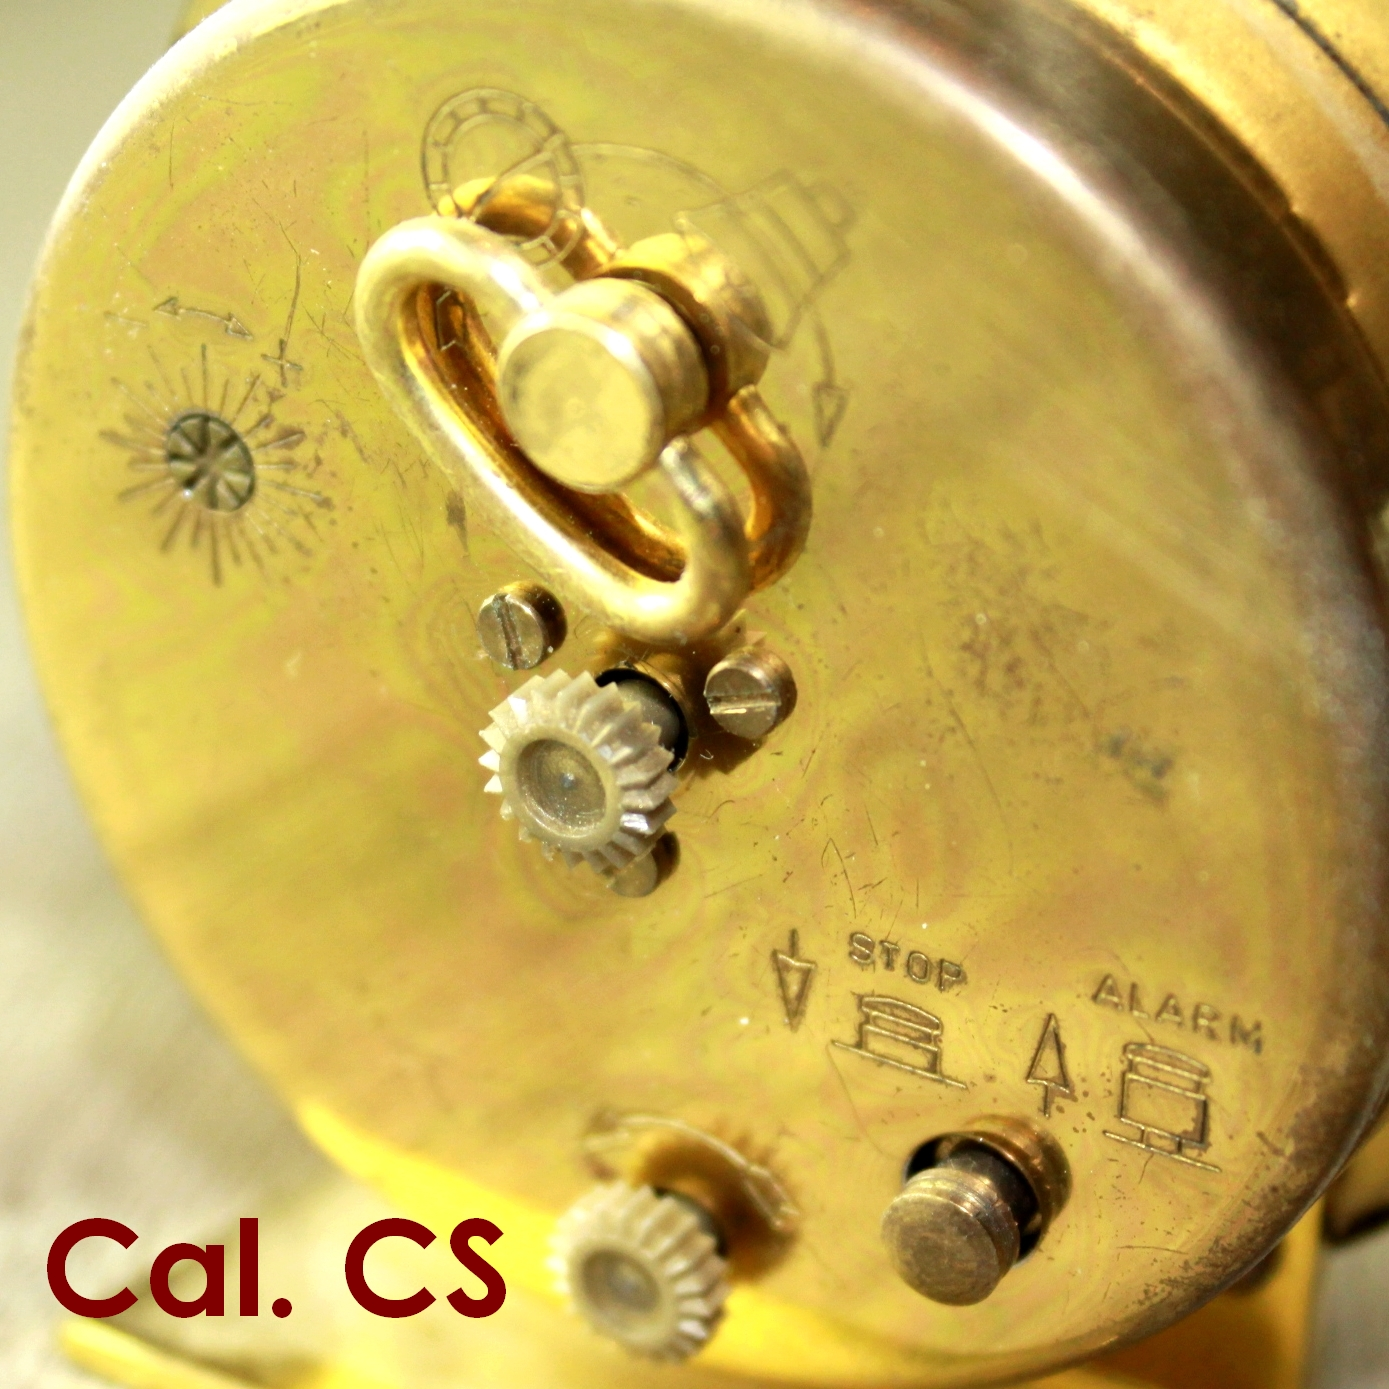 calibre CS